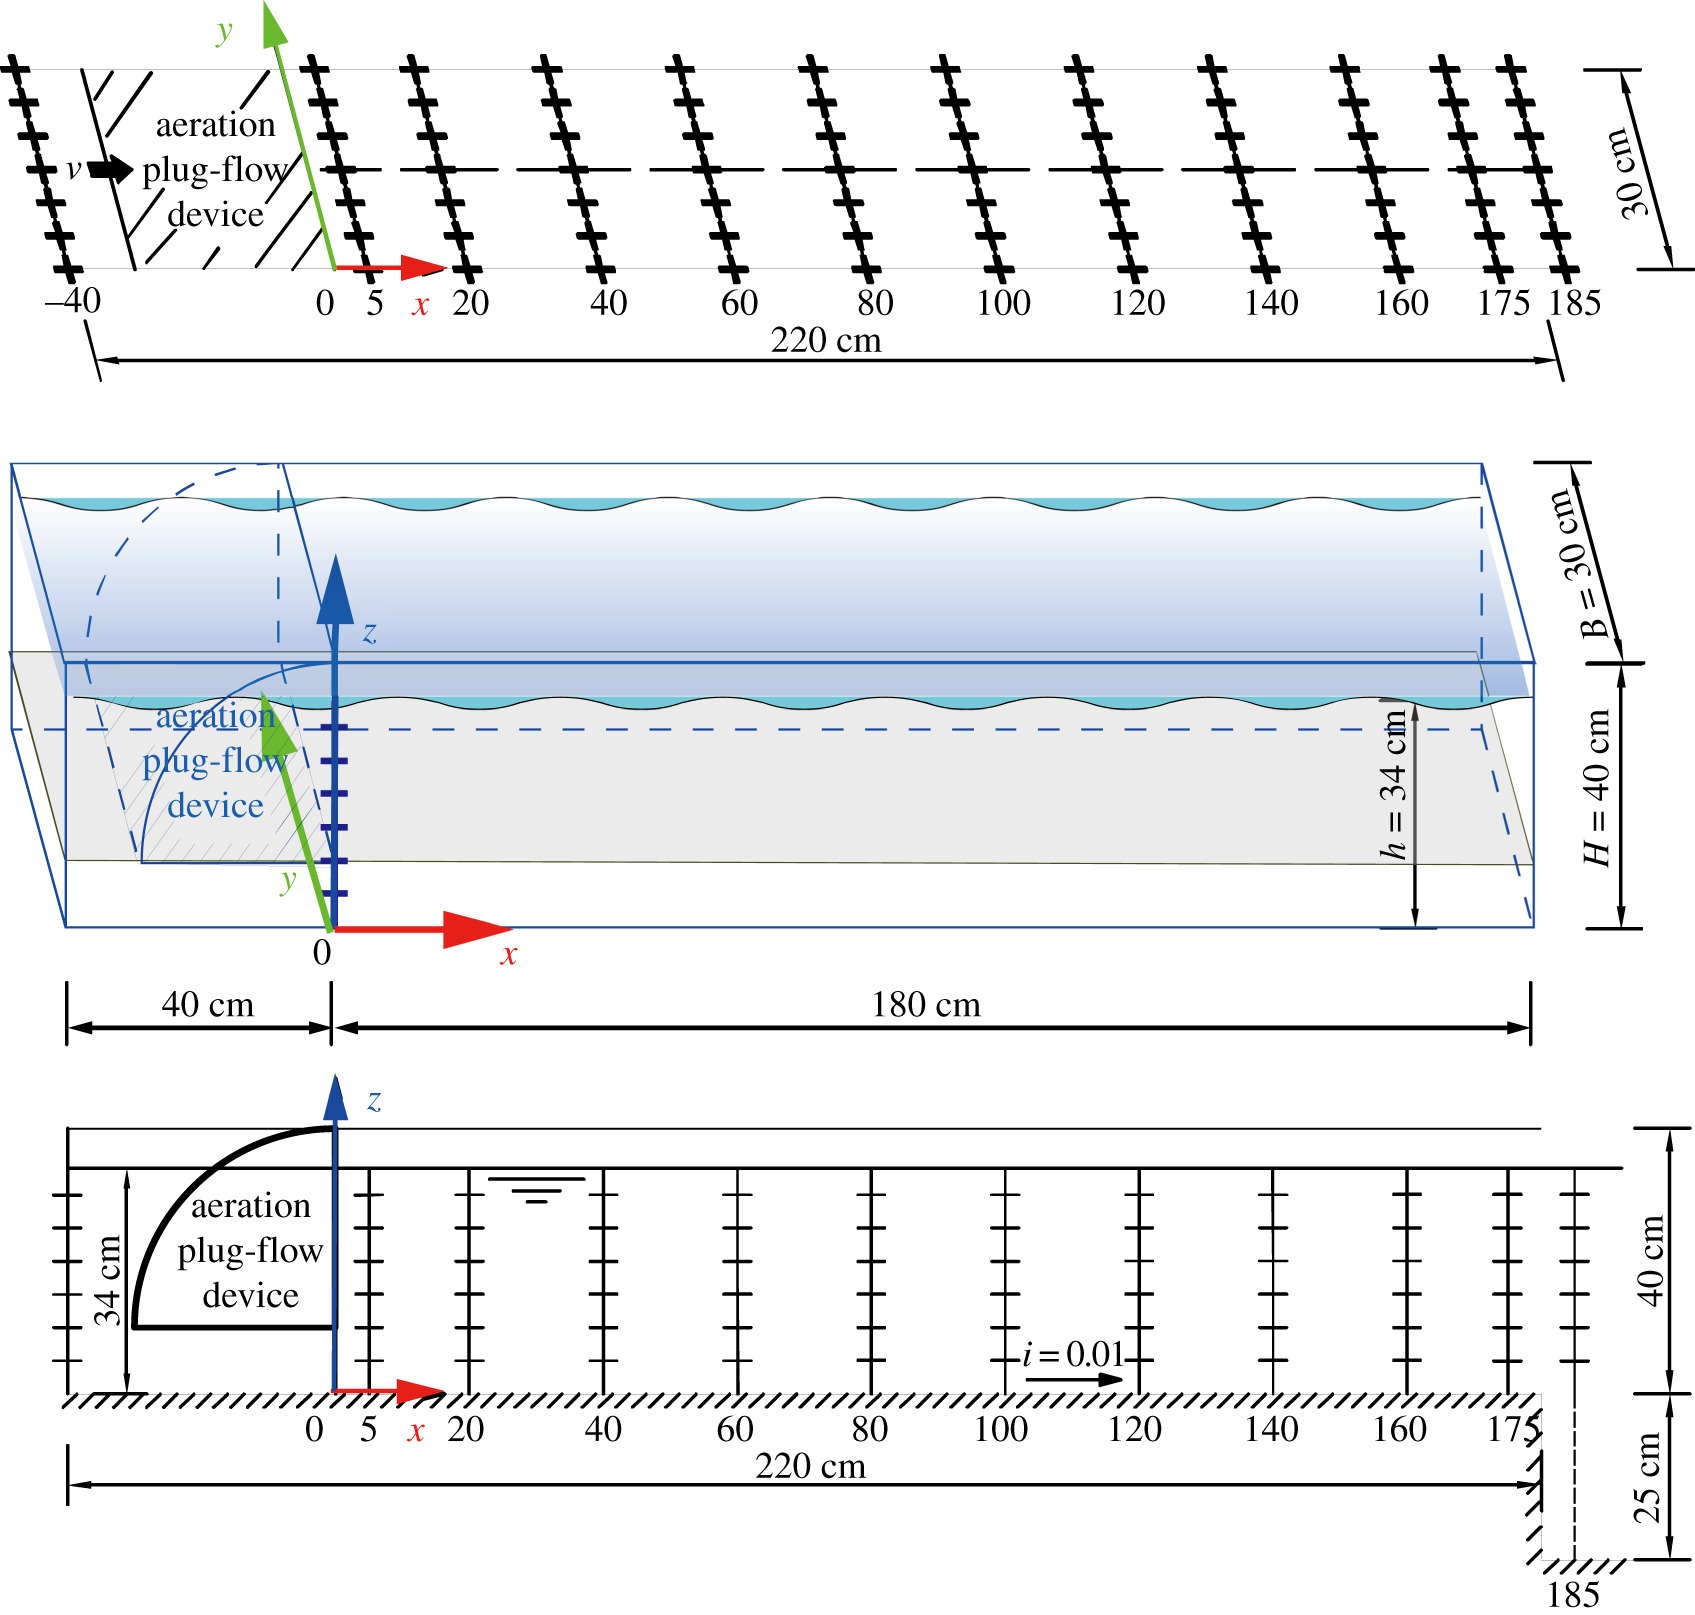 Hydrodynamics Of An In Pond Raceway System With An Aeration Plug Flow Device For Application In Aquaculture An Experimental Study Royal Society Open Science